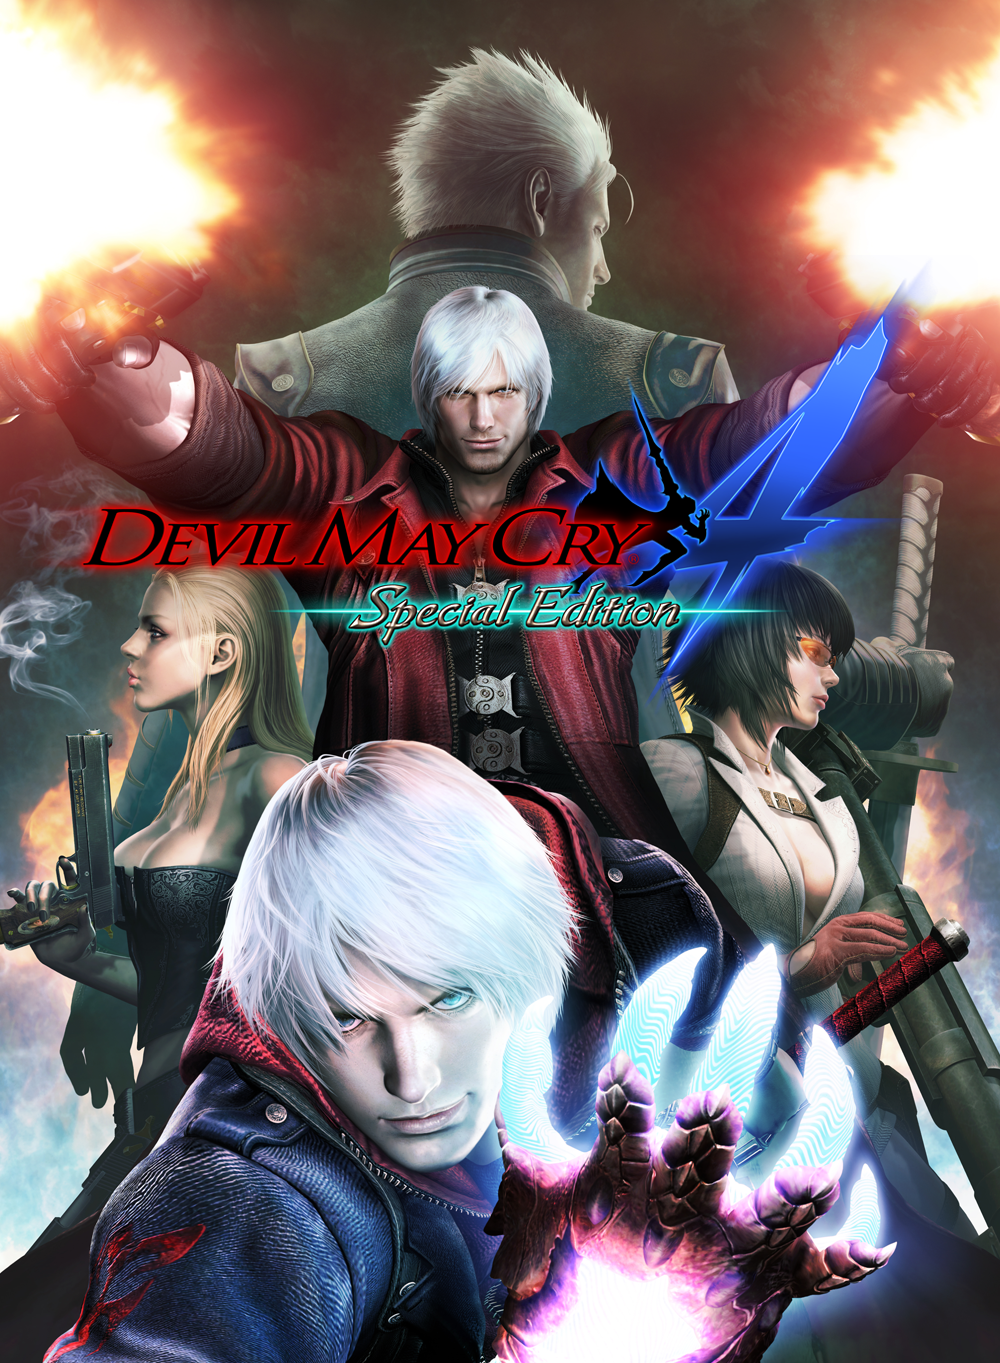 Devil May Cry 4 : Special Edition (2015)  - Jeu vidéo streaming VF gratuit complet